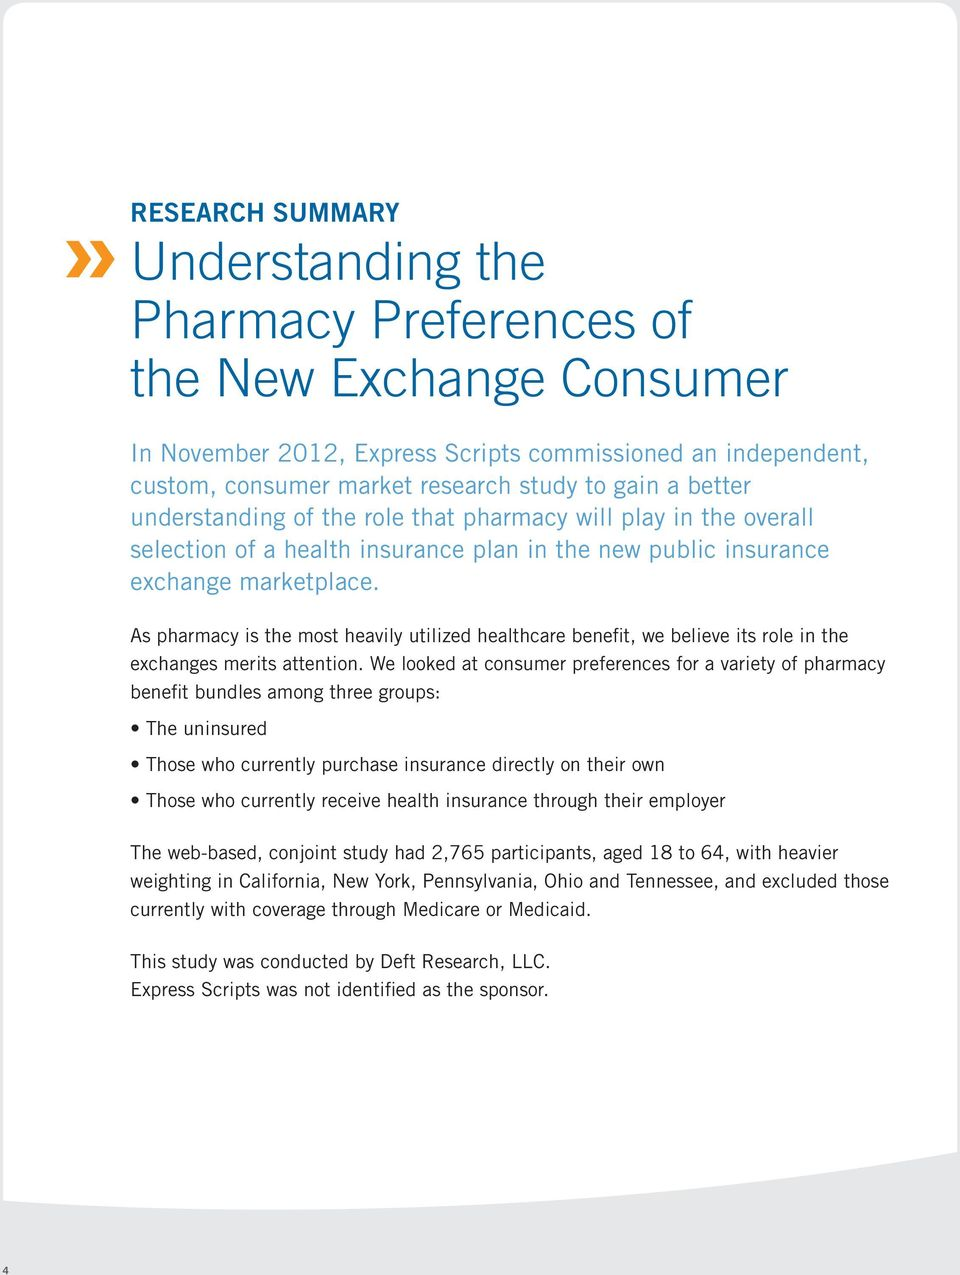 As pharmacy is the most heavily utilized healthcare benefit, we believe its role in the exchanges merits attention.